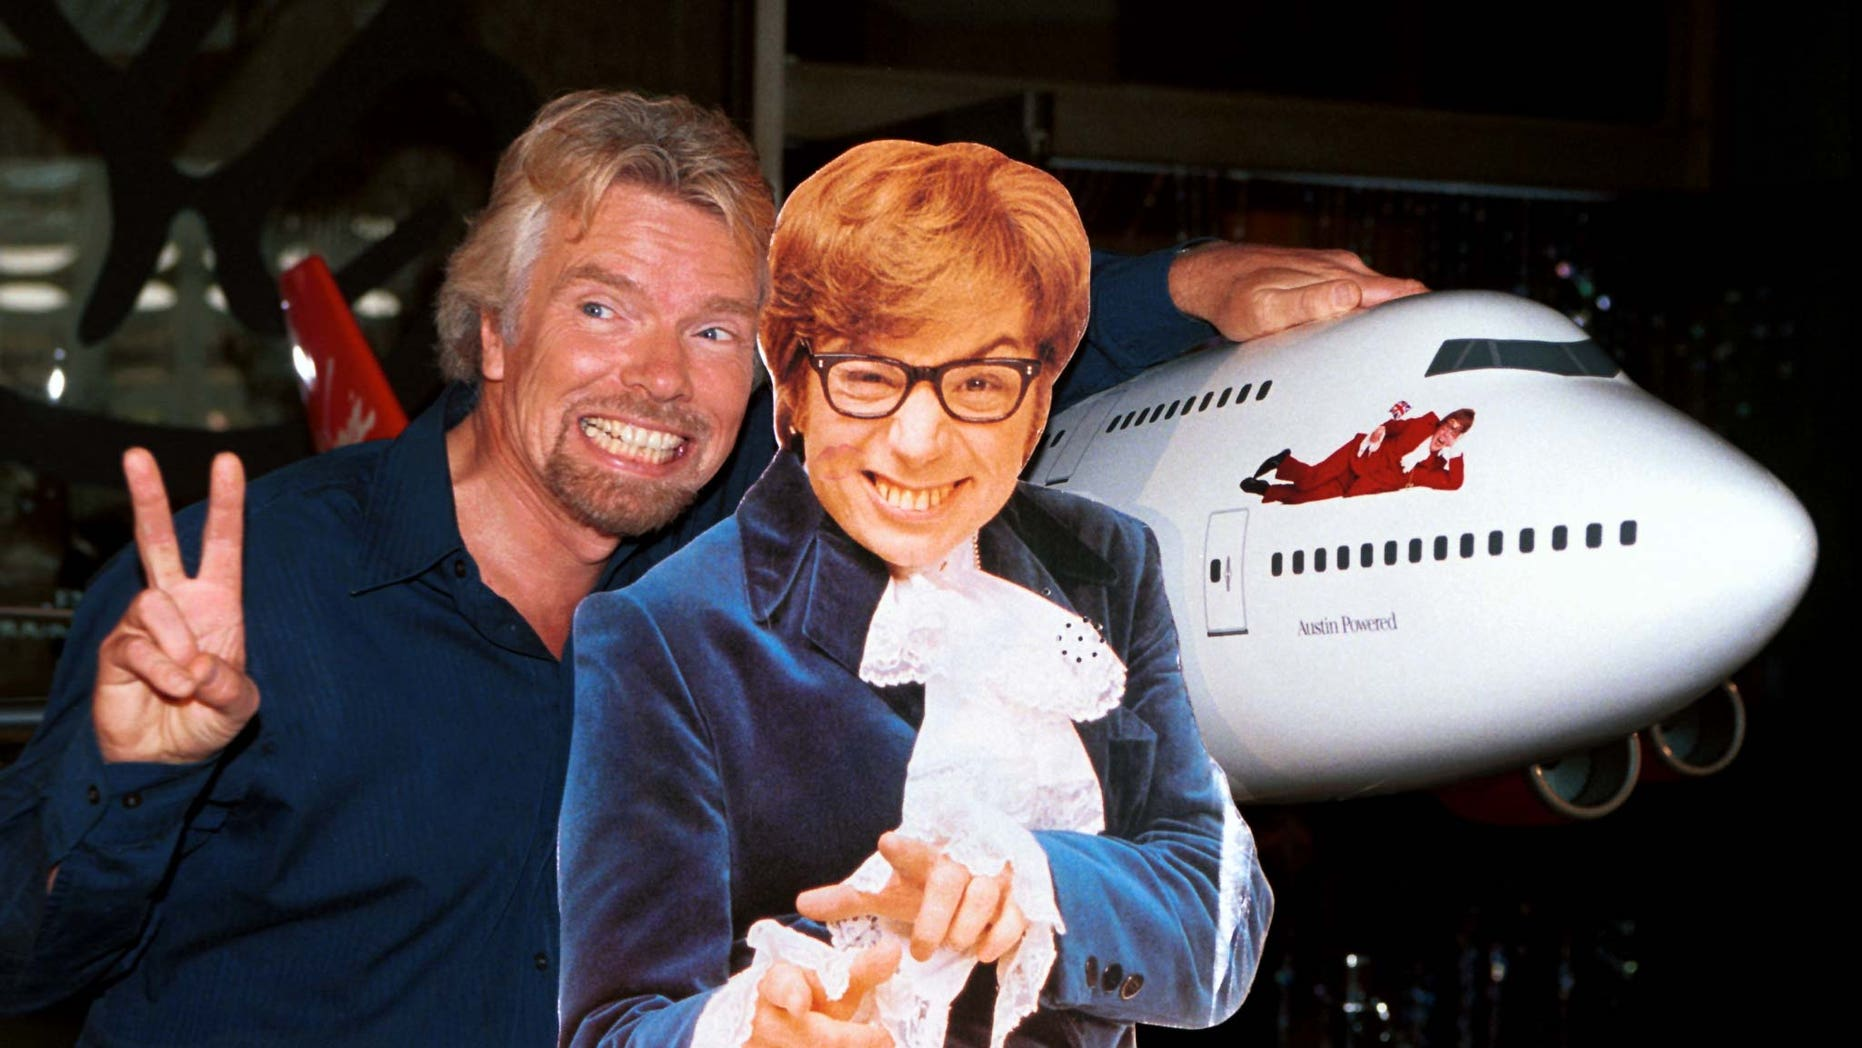 "Virgin Atlantic Airways CEO Richard Branson (L) poses with a cut-out of actor Mike Myers, as Austin Powers, after christening ceremonies of Virgin Shaglantic Flight double-O-Seven at Los Angeles International Airport, May 10. The unveiling of the renamed and redecorated airliner signaled the start of a dynamic global air travel marketing blitz in the partnership with the release of the New Line Cinema movie ""Austin Powers: The Spy Who Shagged Me""."